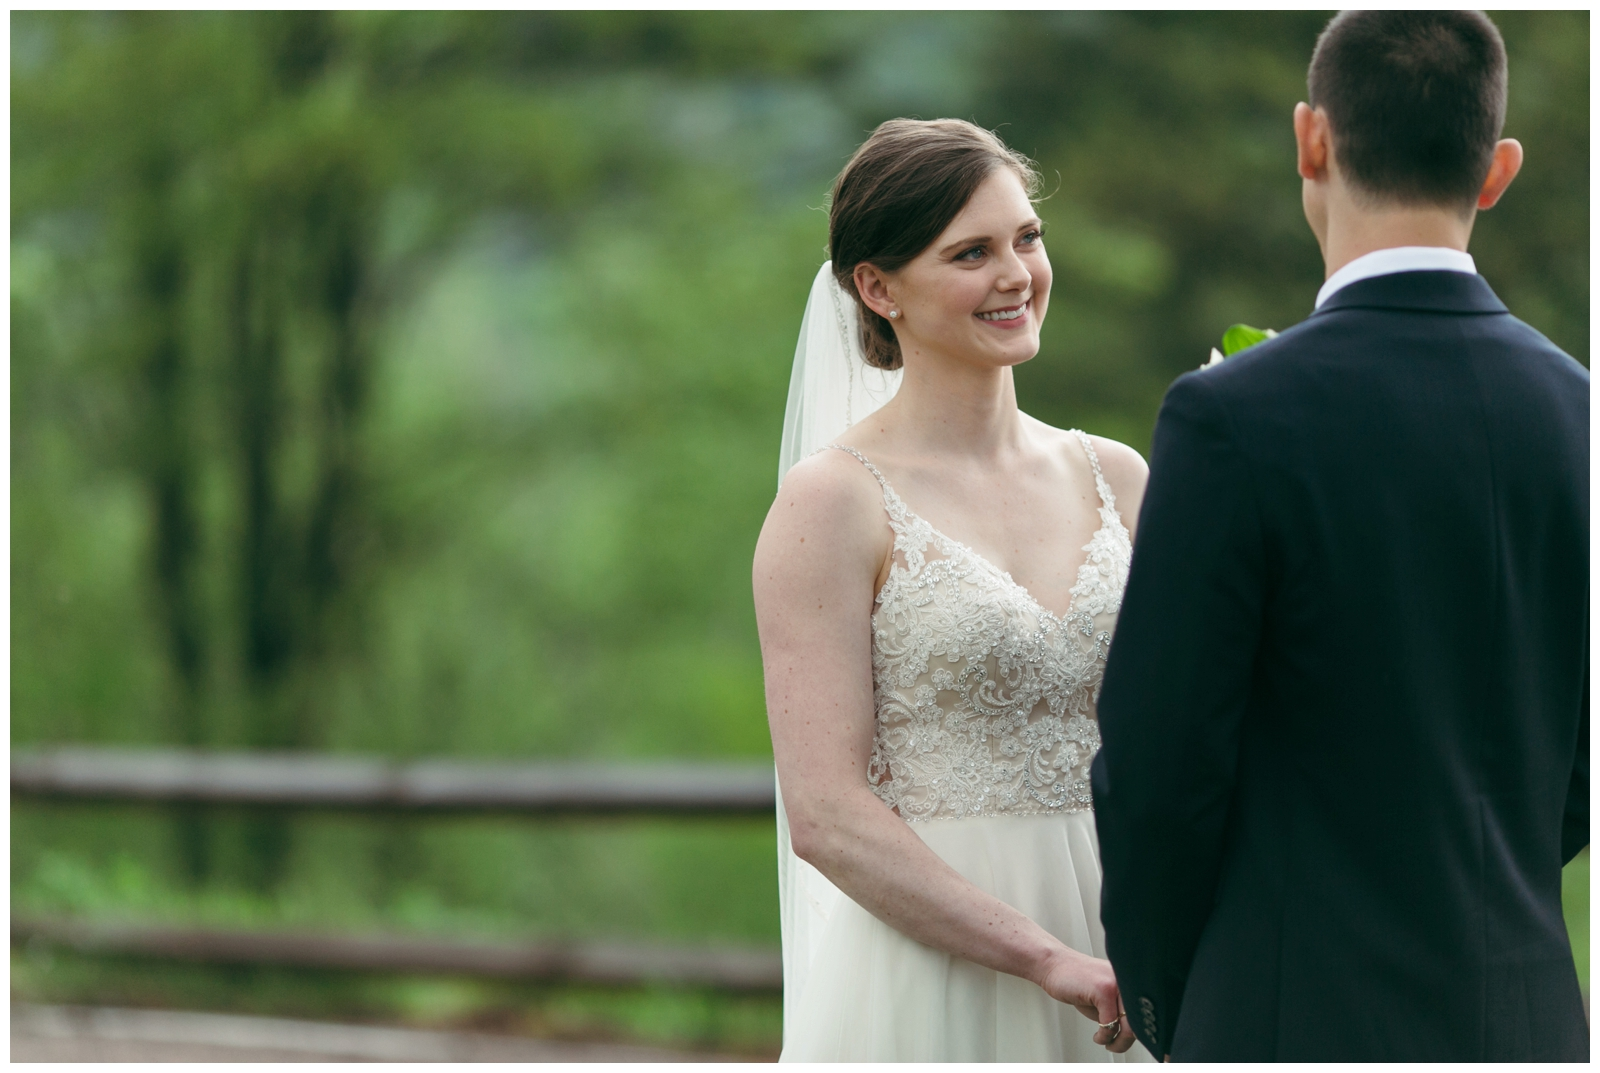 Vermont-Elopement-Topnotch-Stowe-Wedding-Bailey-Q-Photo-Boston-Wedding-Photographer-035.jpg